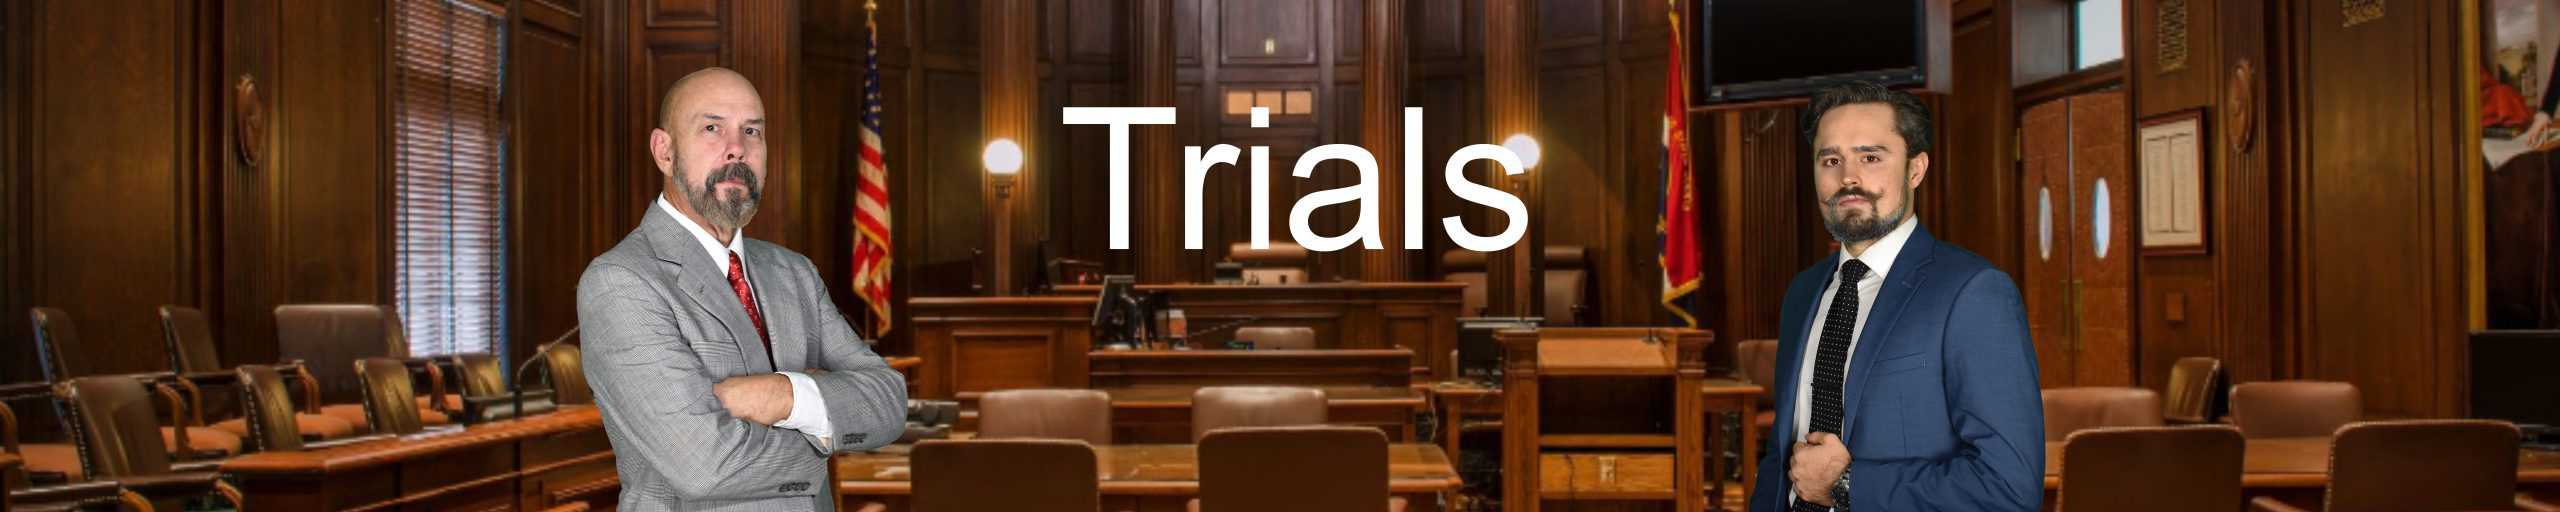 Trial-Jury-Judge-Court-Verdict-Supreme-Superiror-State-Car-Accidents-Personal-Injury-Attorney-Lawyer-Hurt-Broken-Rear-End-Money-Settlement-Hospital-ER-Damage-Insurance-Company